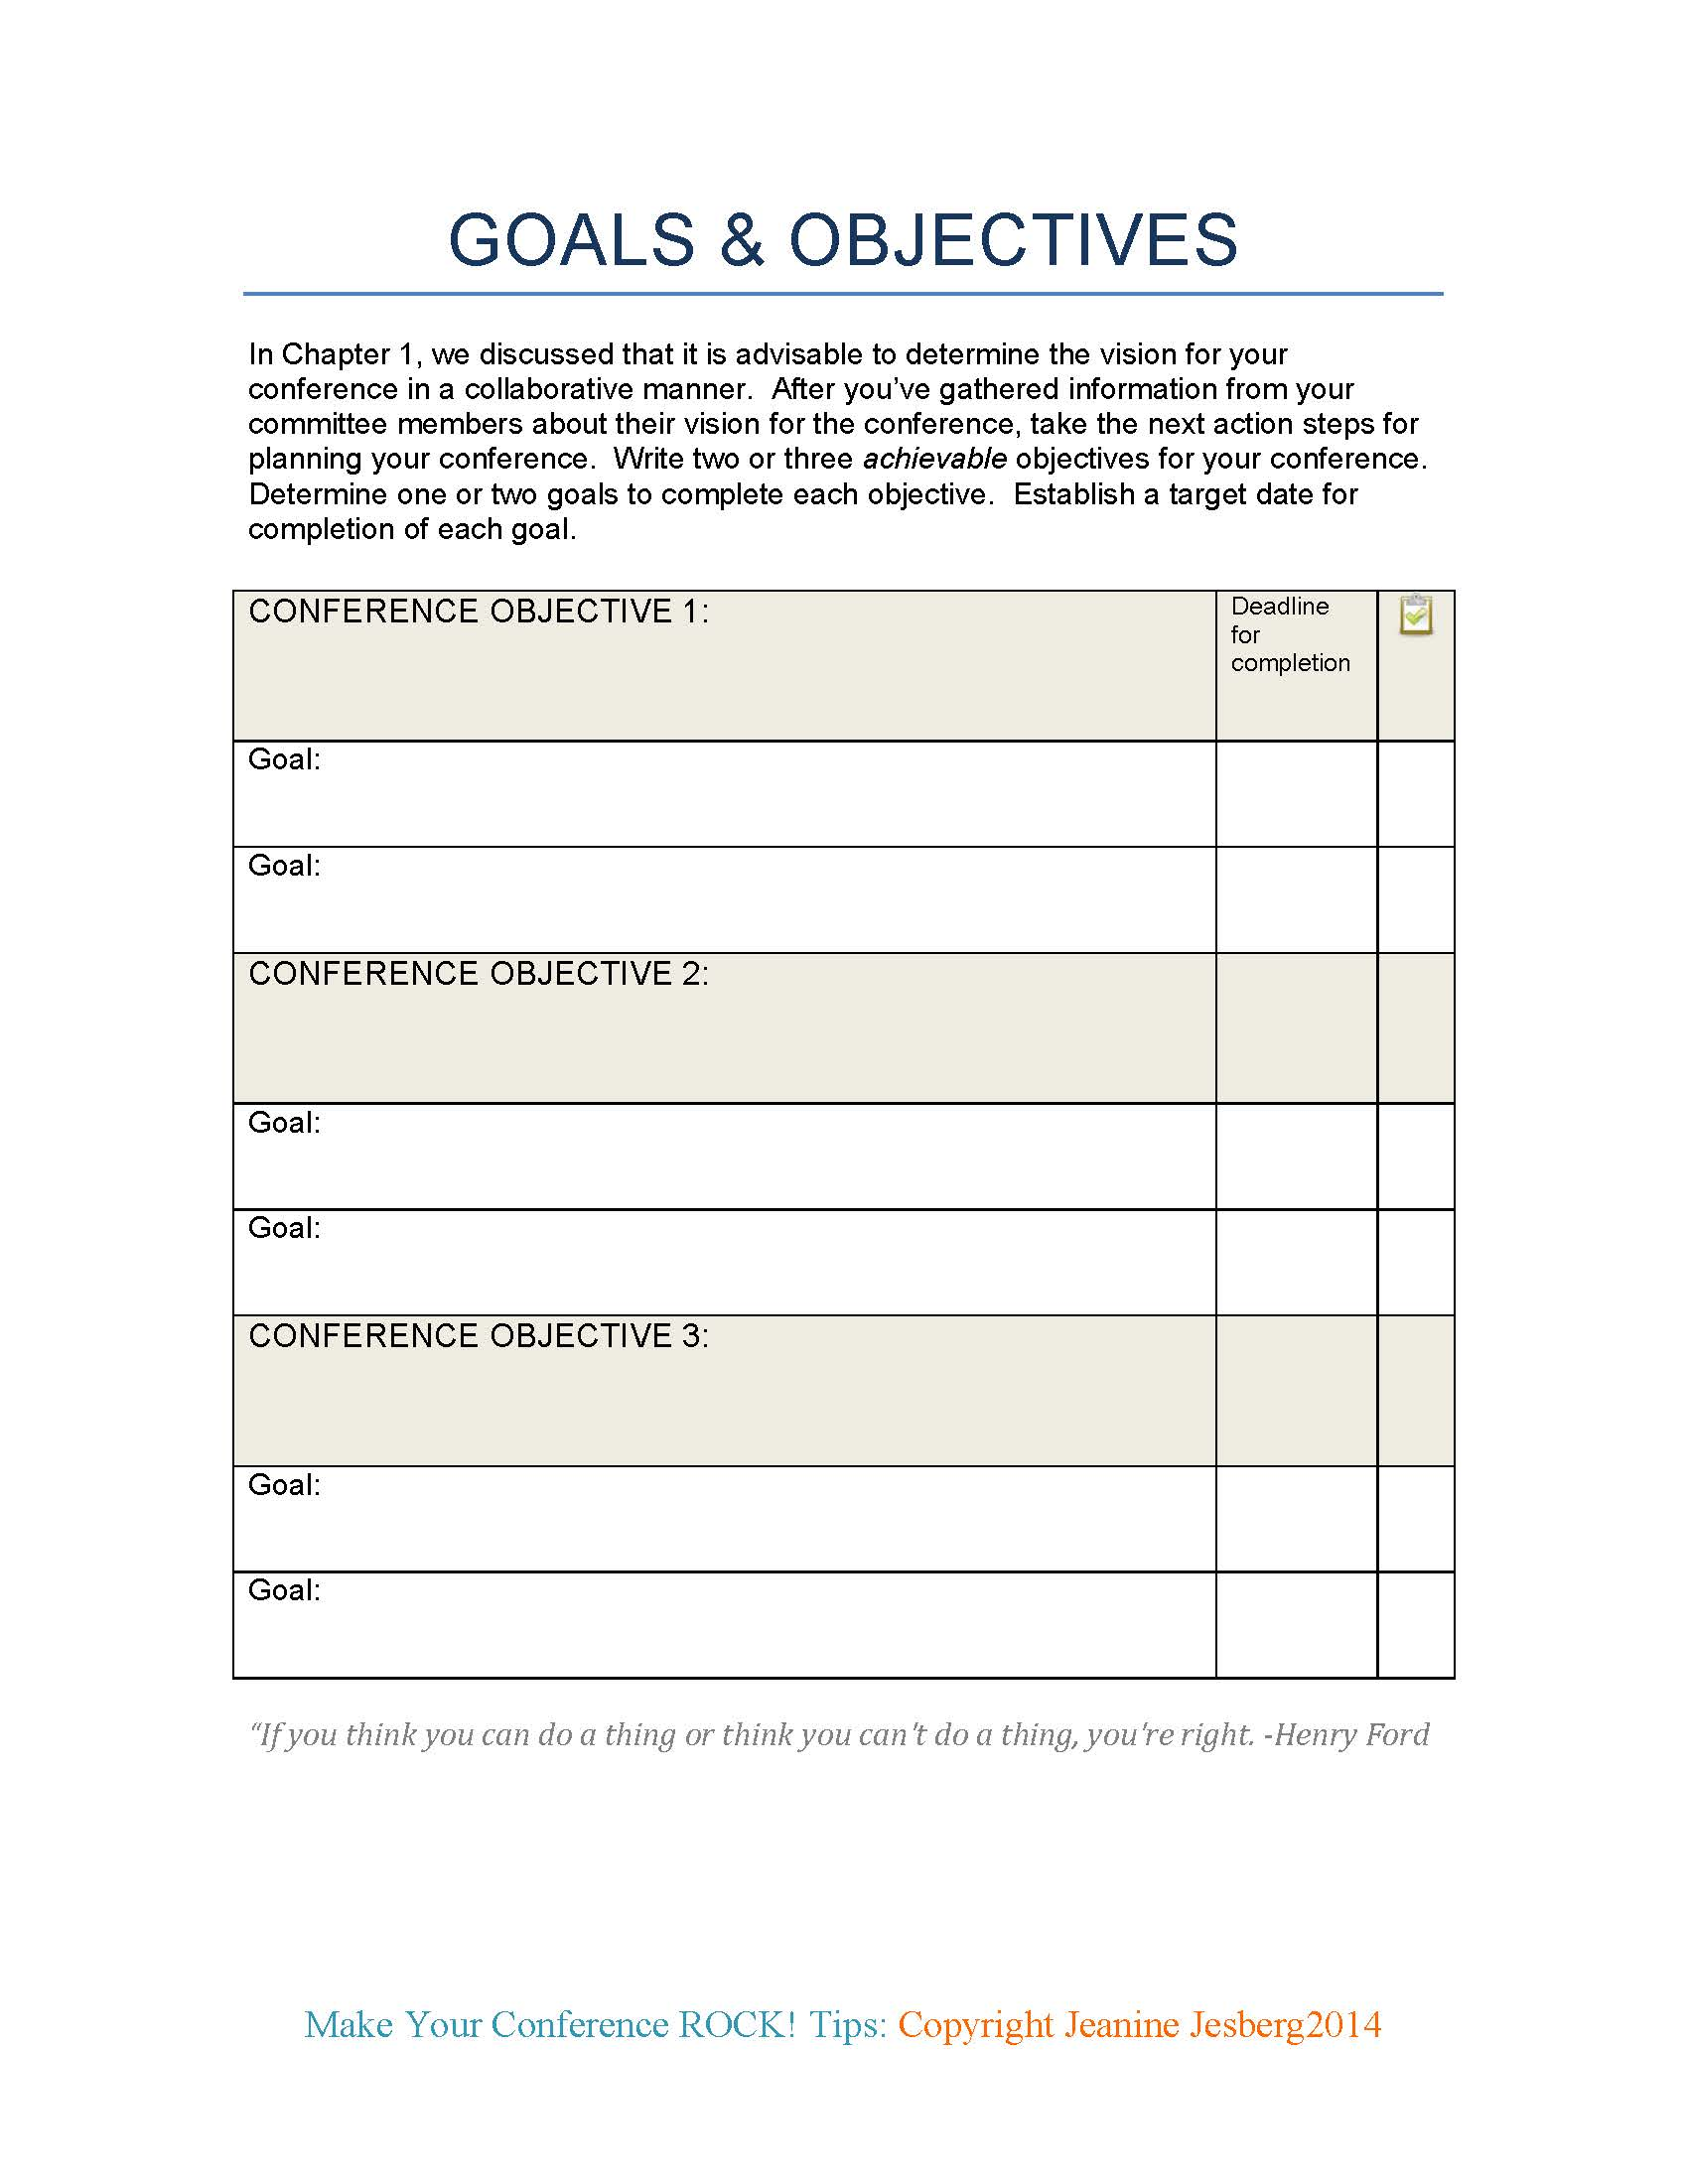 Free Worksheet Goals And Objectives Worksheet make your workshop rock tips and tools developing vision goals objectives